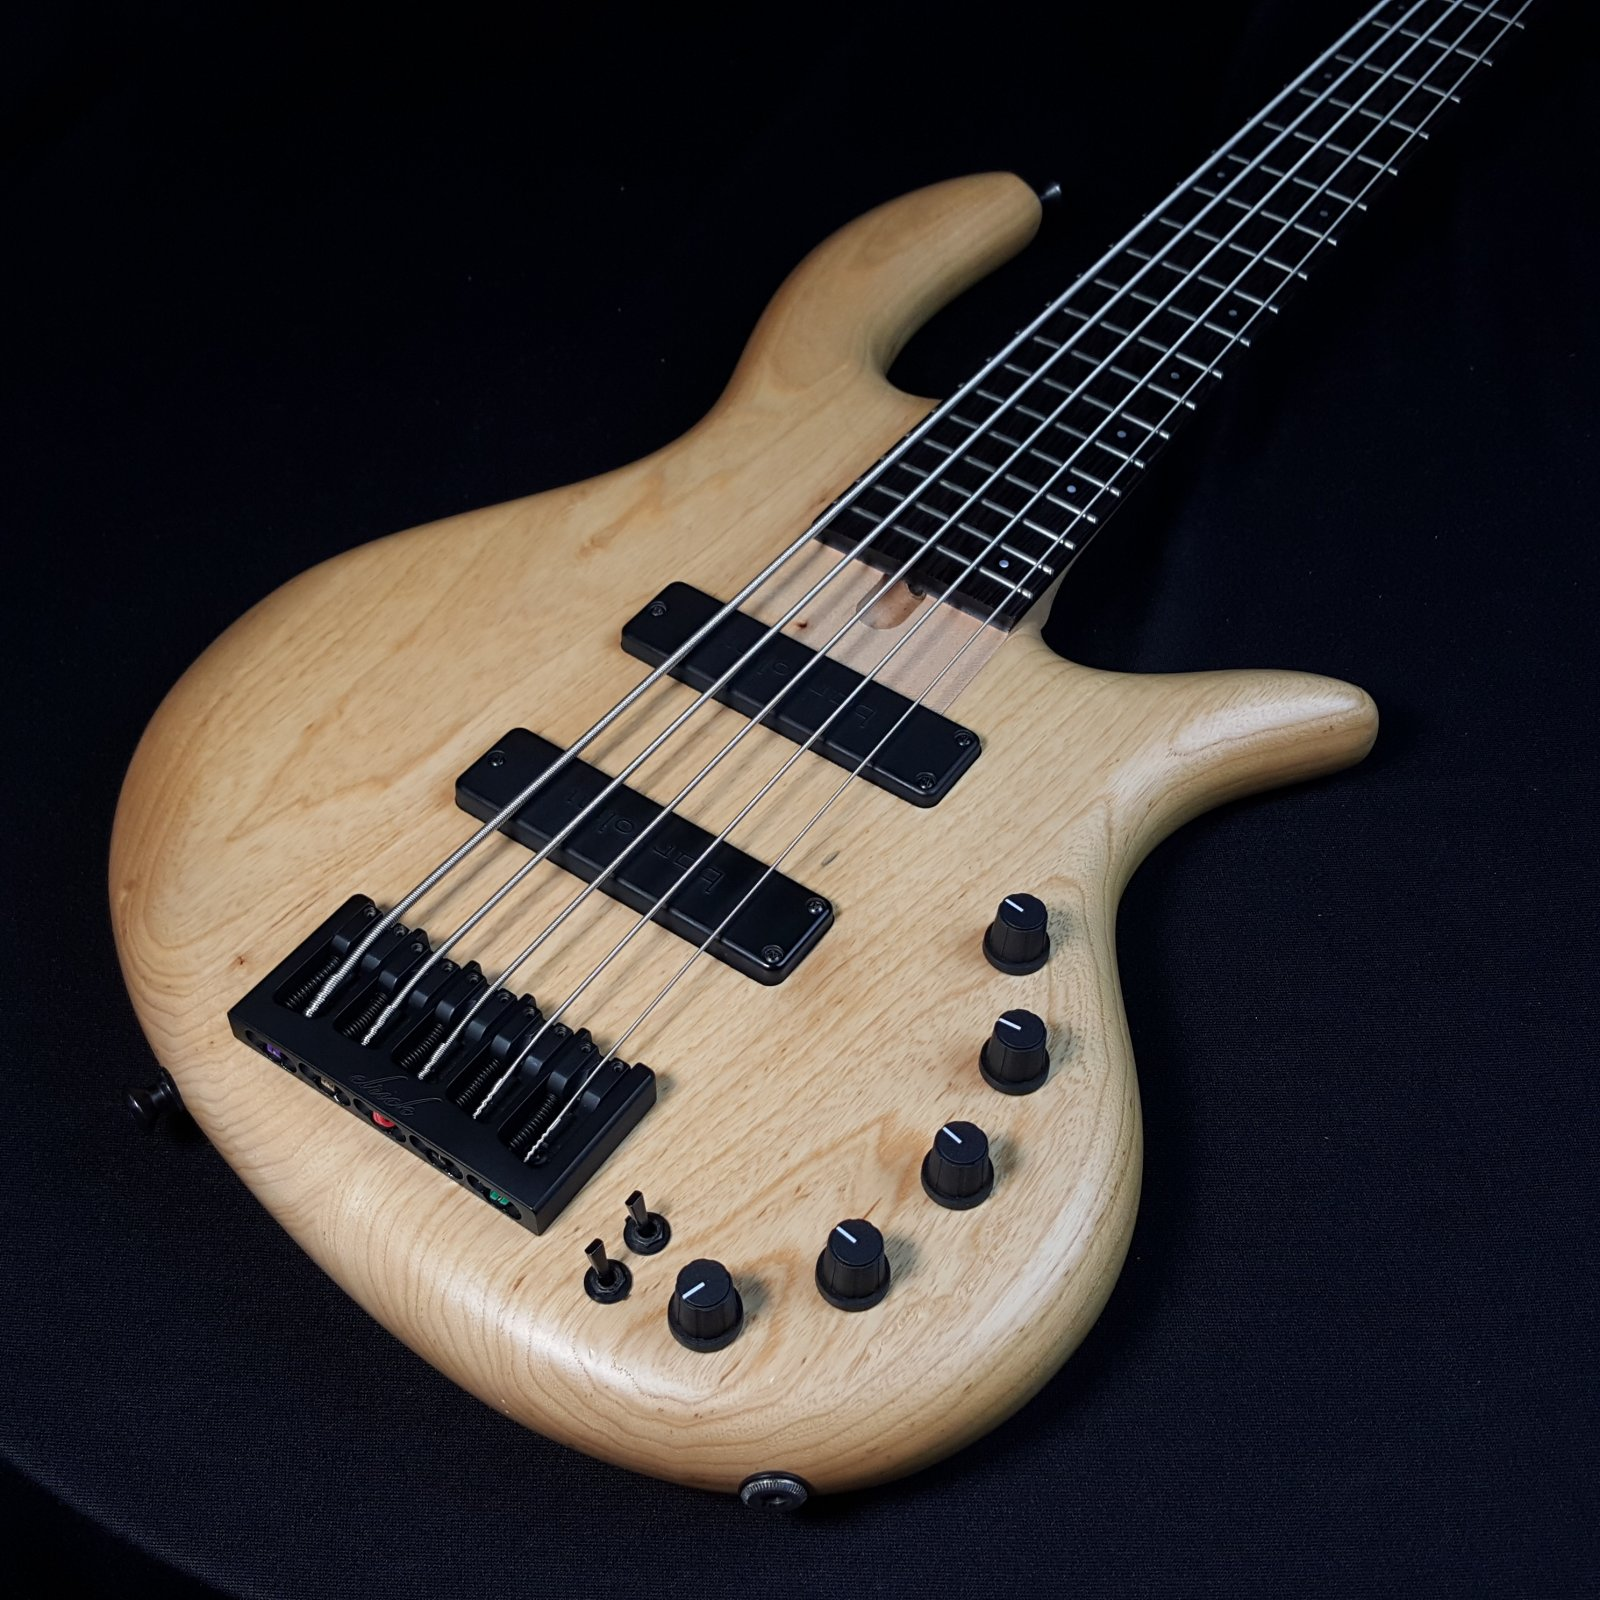 Used Elrick Expat eVolution 5 String Natural Ash with Case